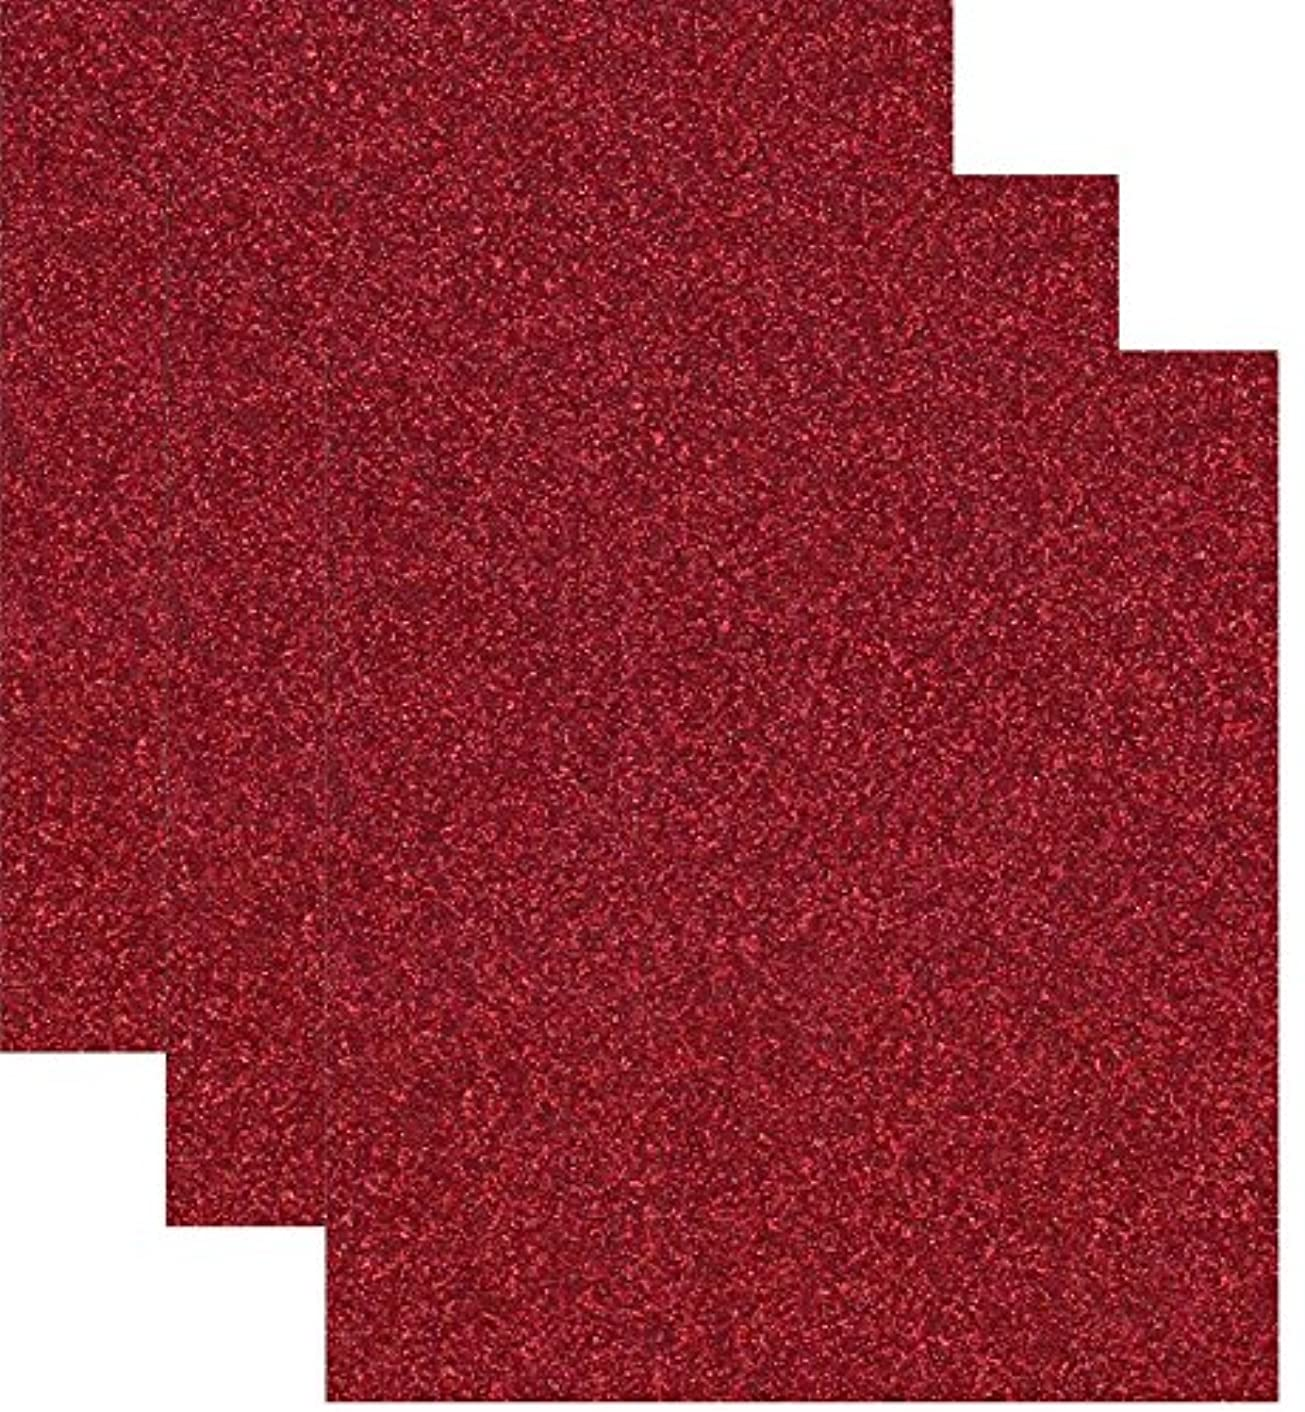 Siser Glitter Heat Transfer Vinyl HTV for T-Shirts 10 by 12 Inches (1 Foot) Sheets 3 Pack (Red)